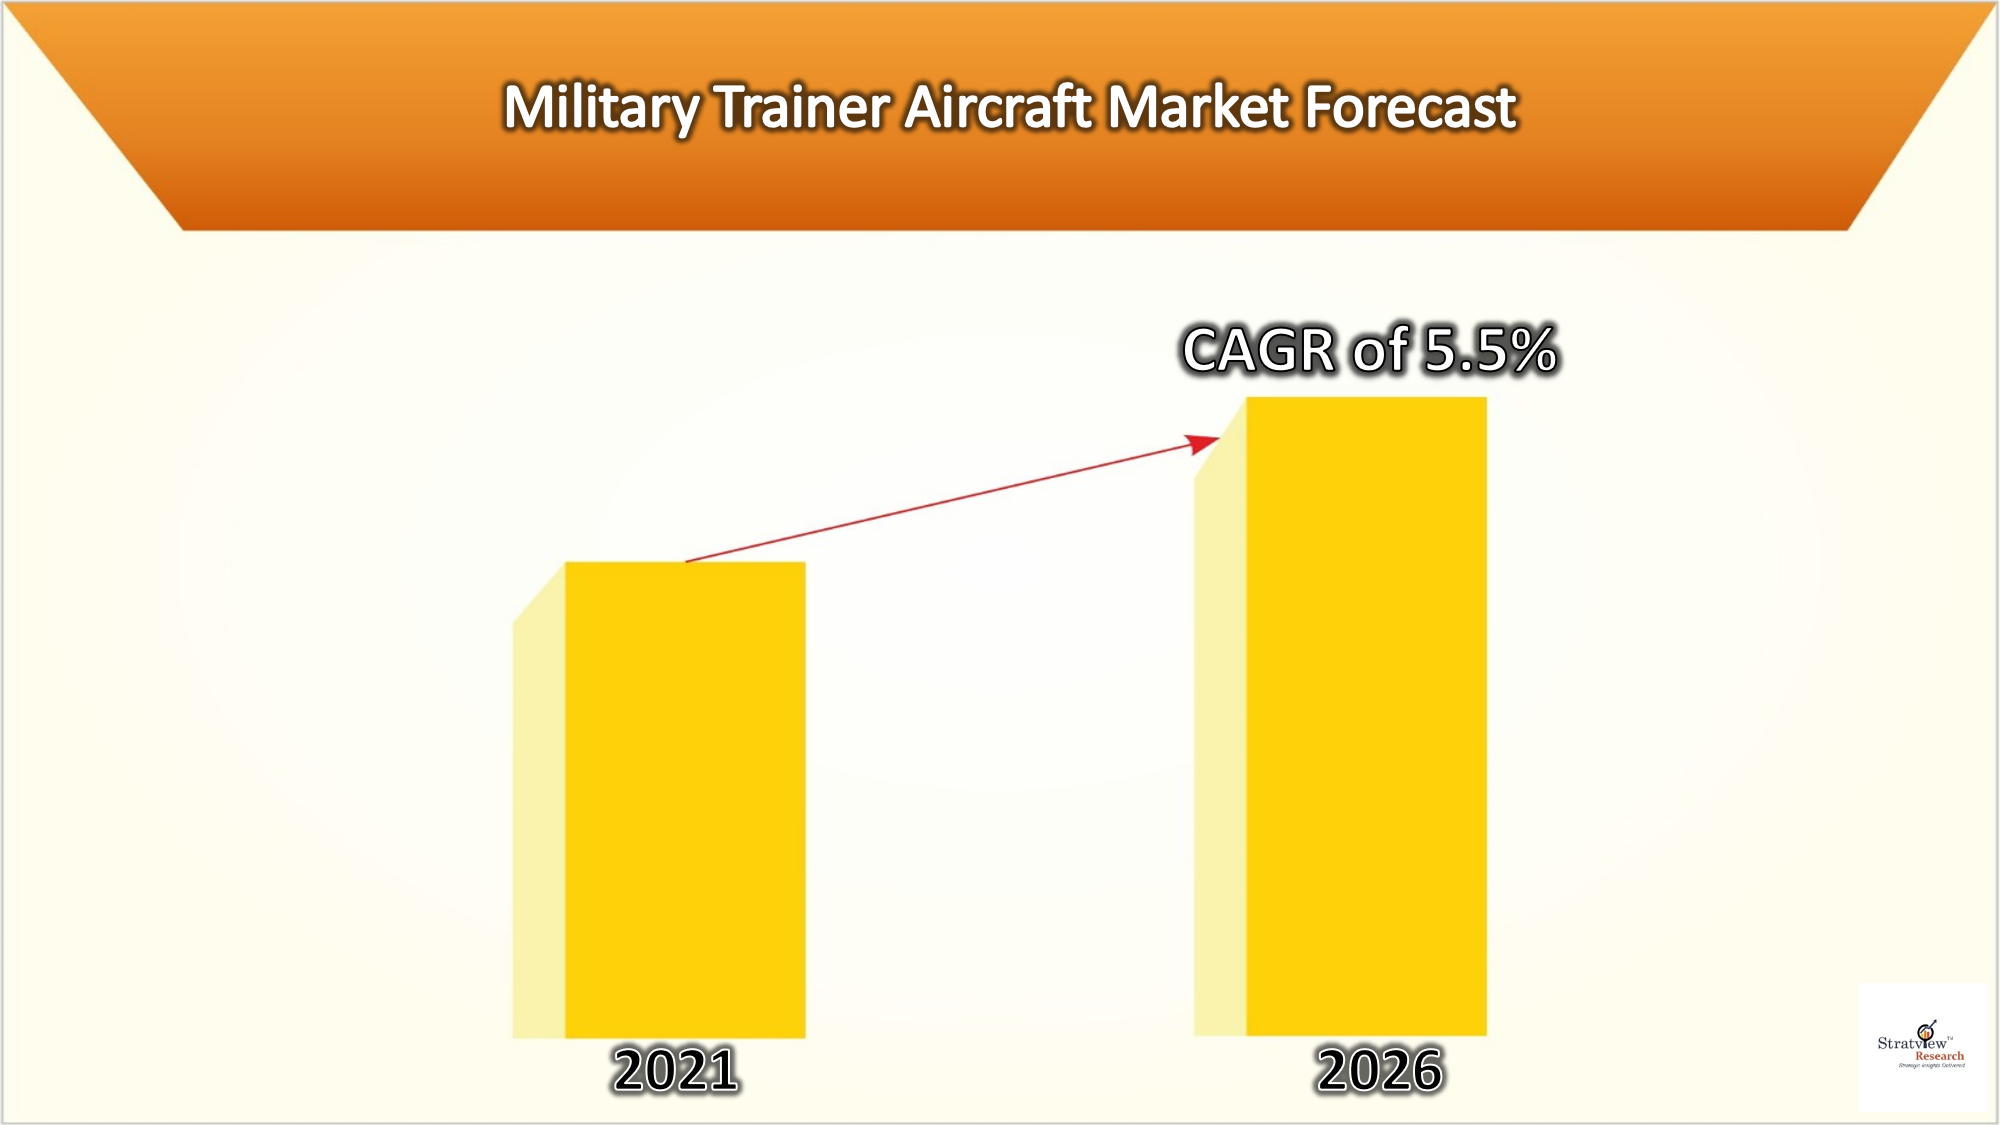 Military Trainer Aircraft Market